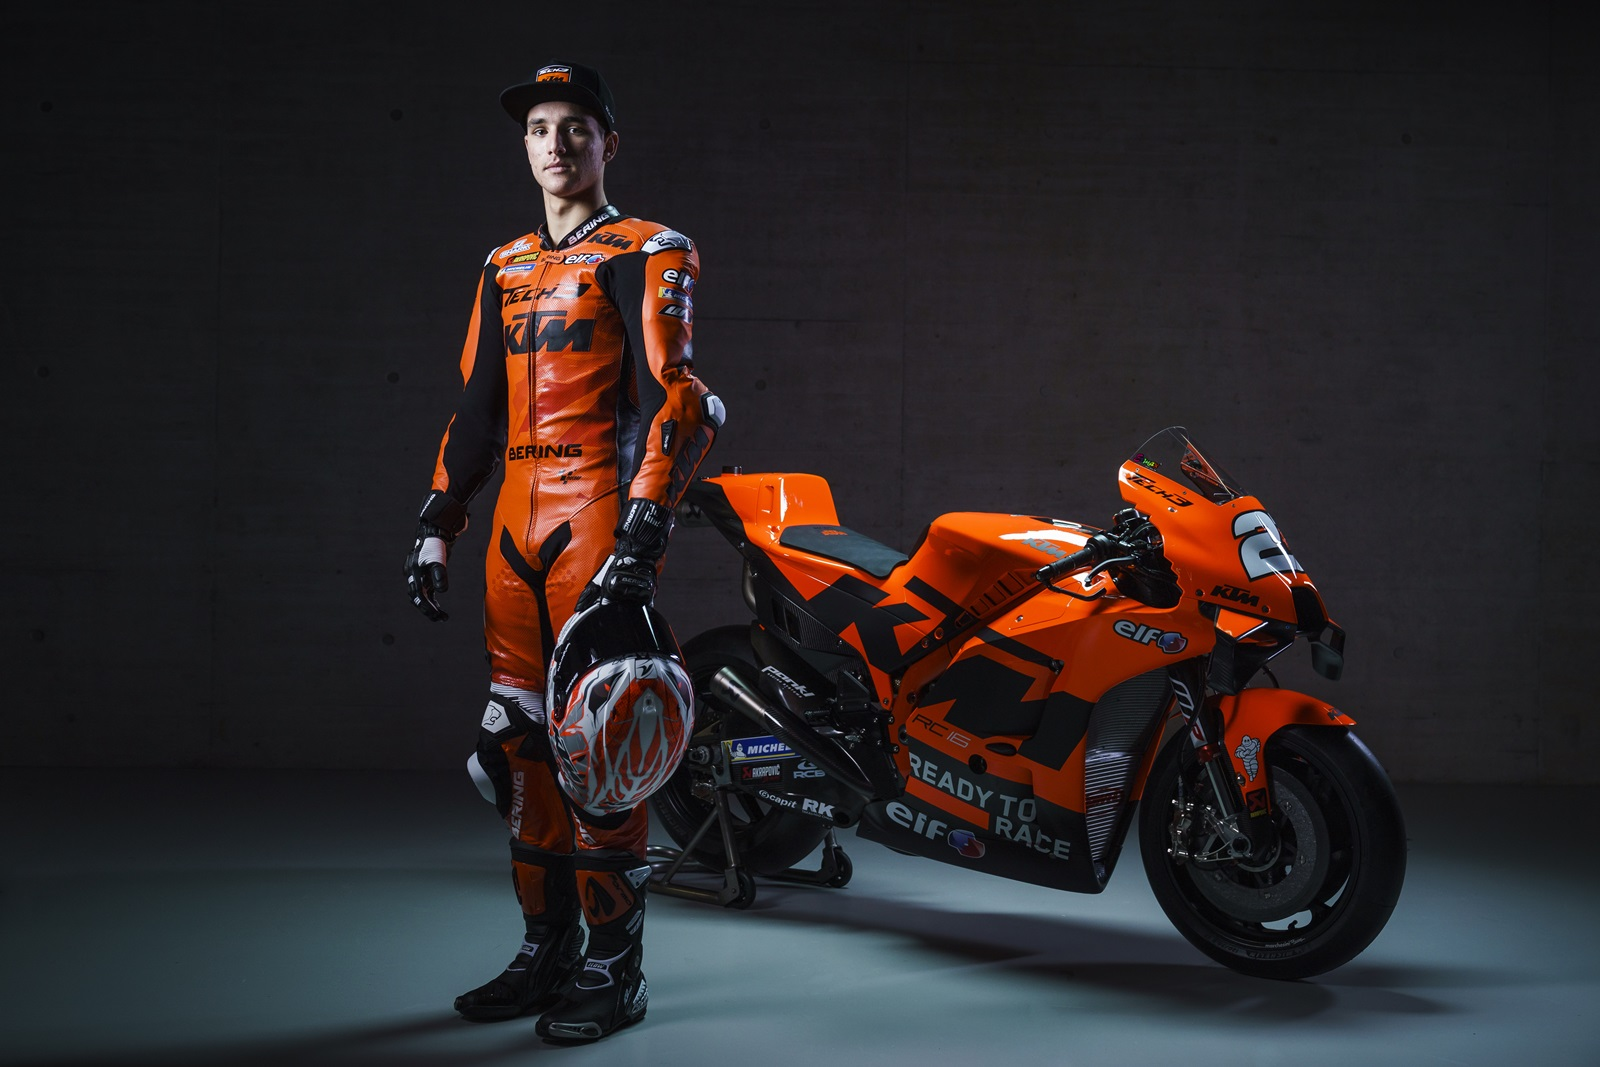 Shop the best new balance sneakers of 2021 for both men and women our favorite indoor halloween decorations of 2021 for a chic and cozy house nobody. Motogp Wallpaper 2021 : Gallery Test Motogp 2021 In Qatar Ruetir